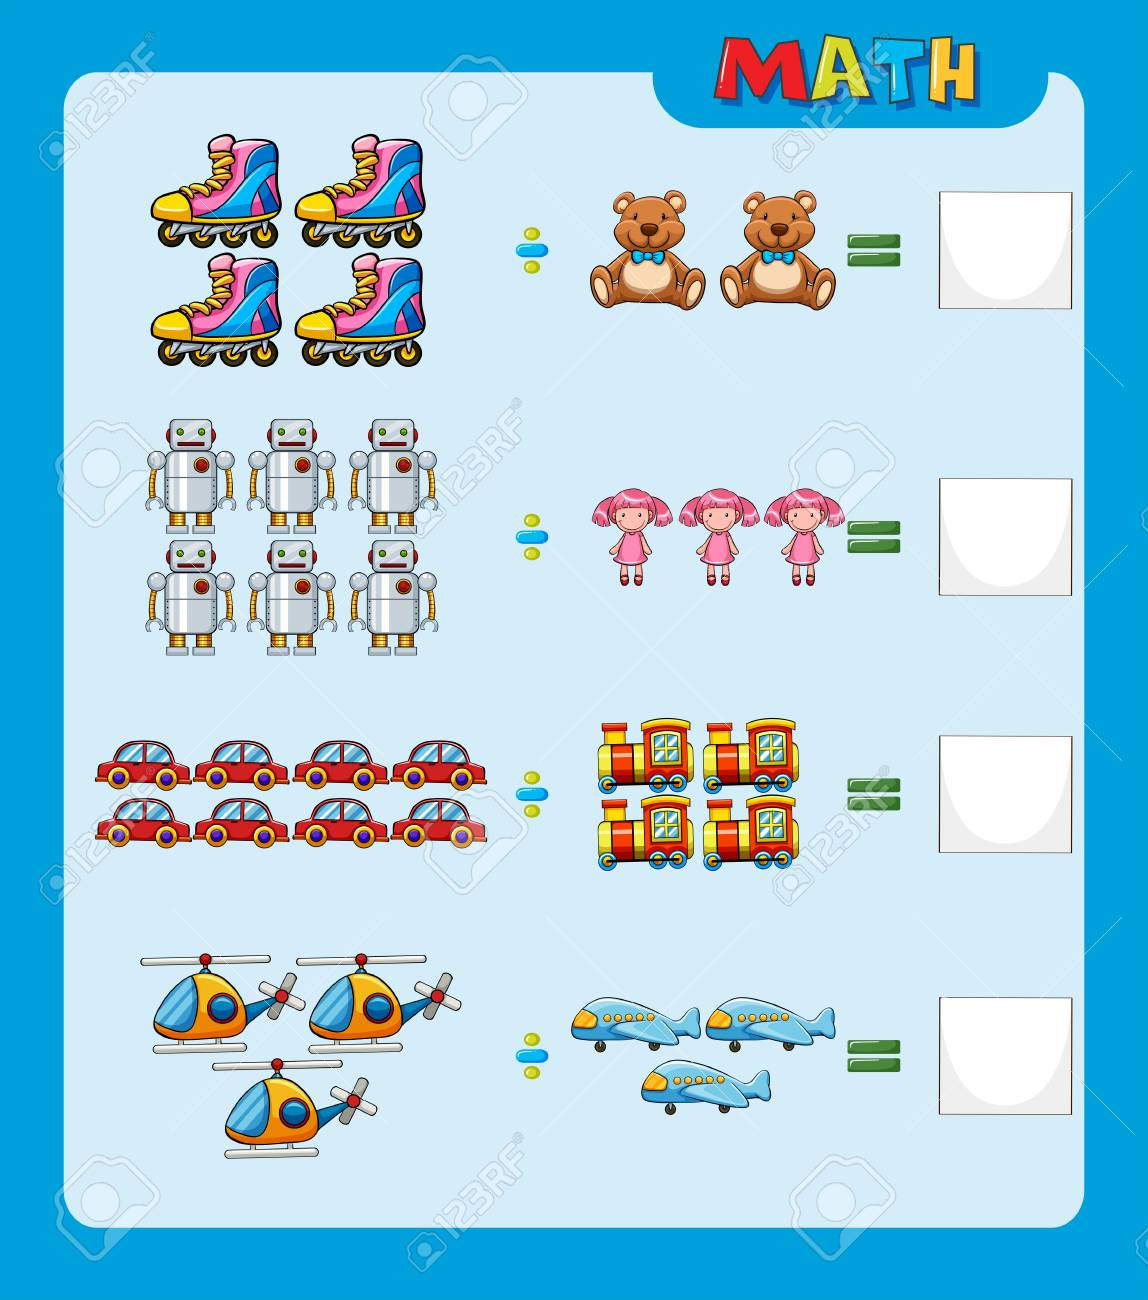 Math Worksheet With Division Questions Illustration Royalty Free ...